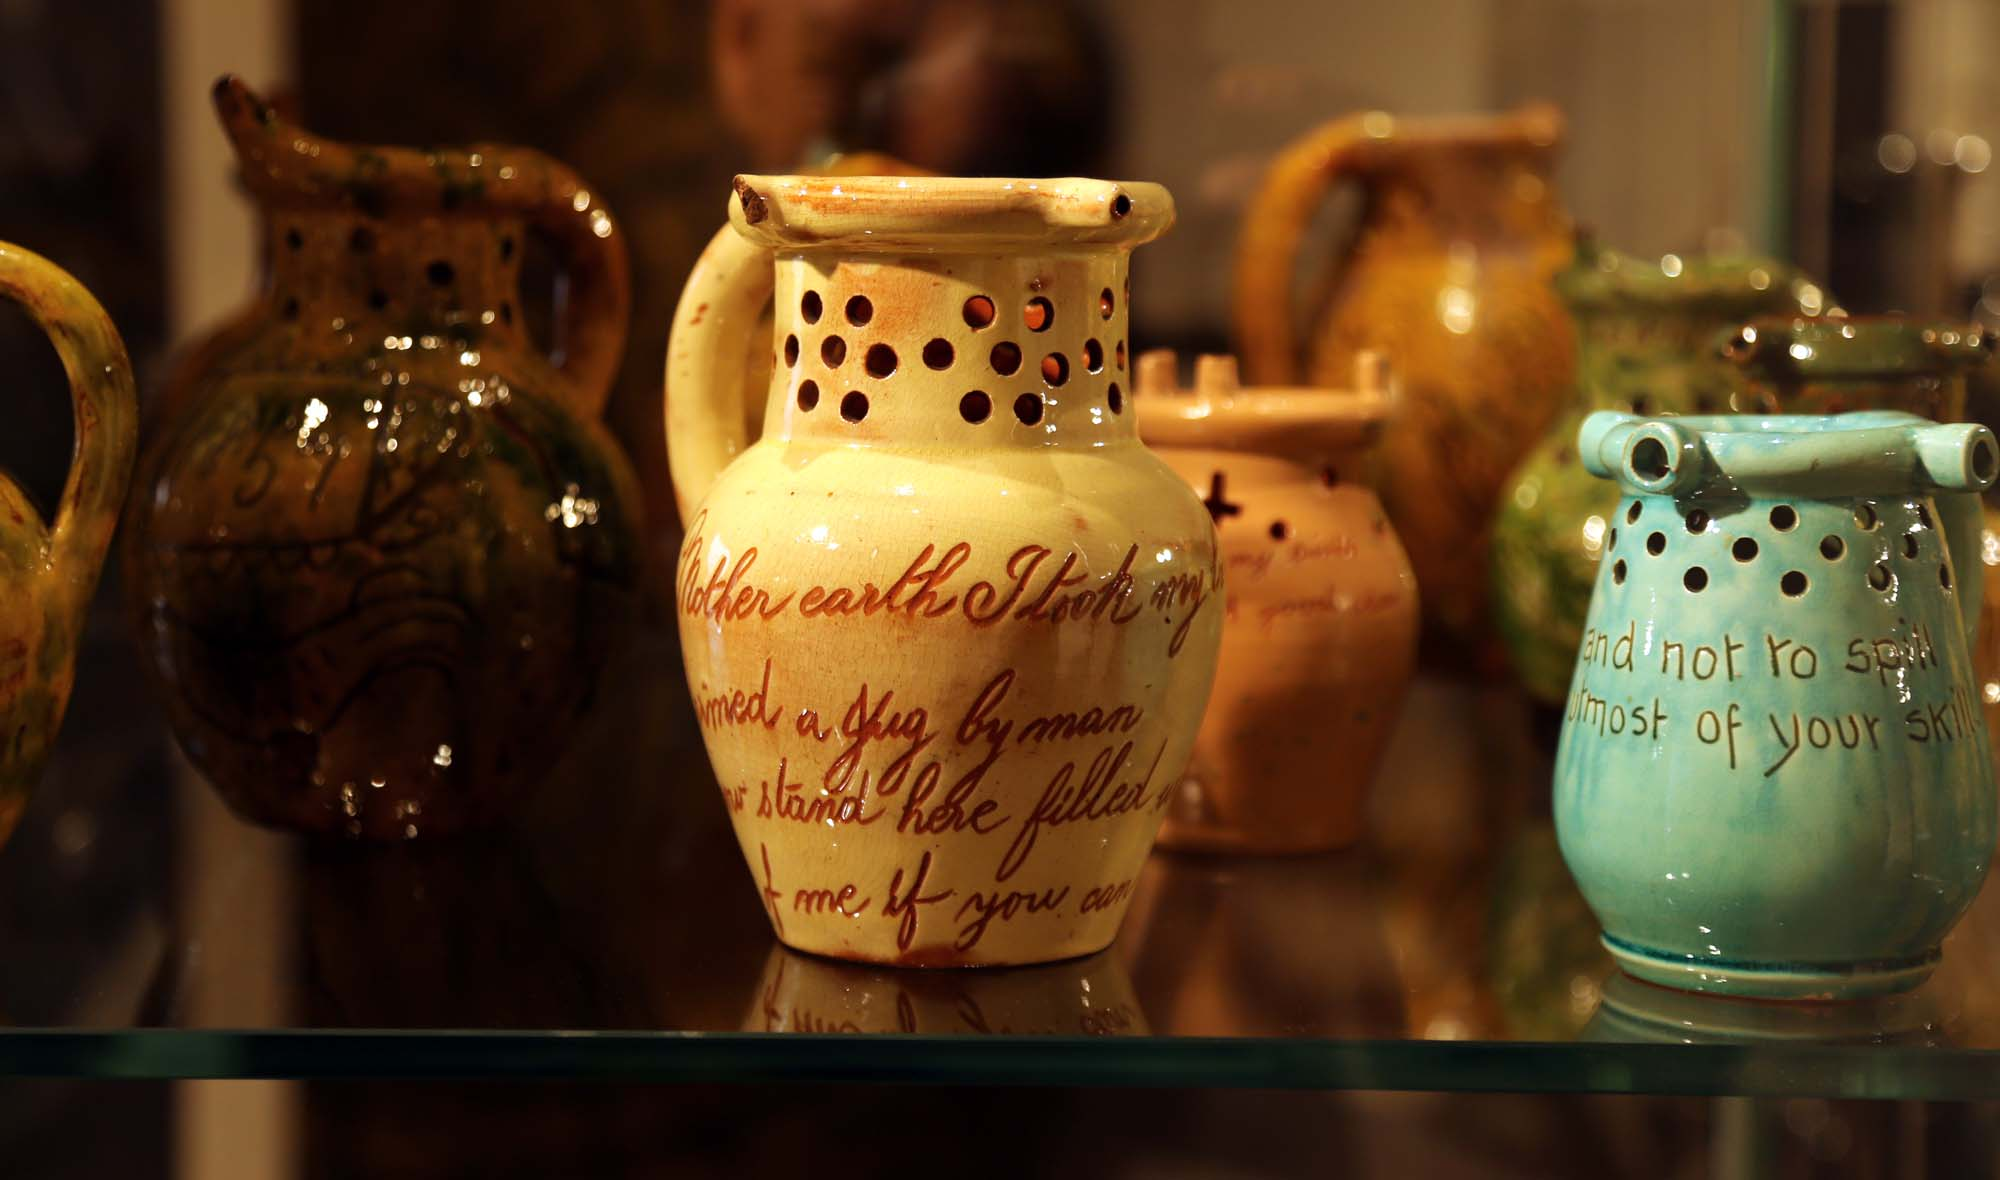 a photo of a collection of jugs with holes in their necks and mottos on their bodies